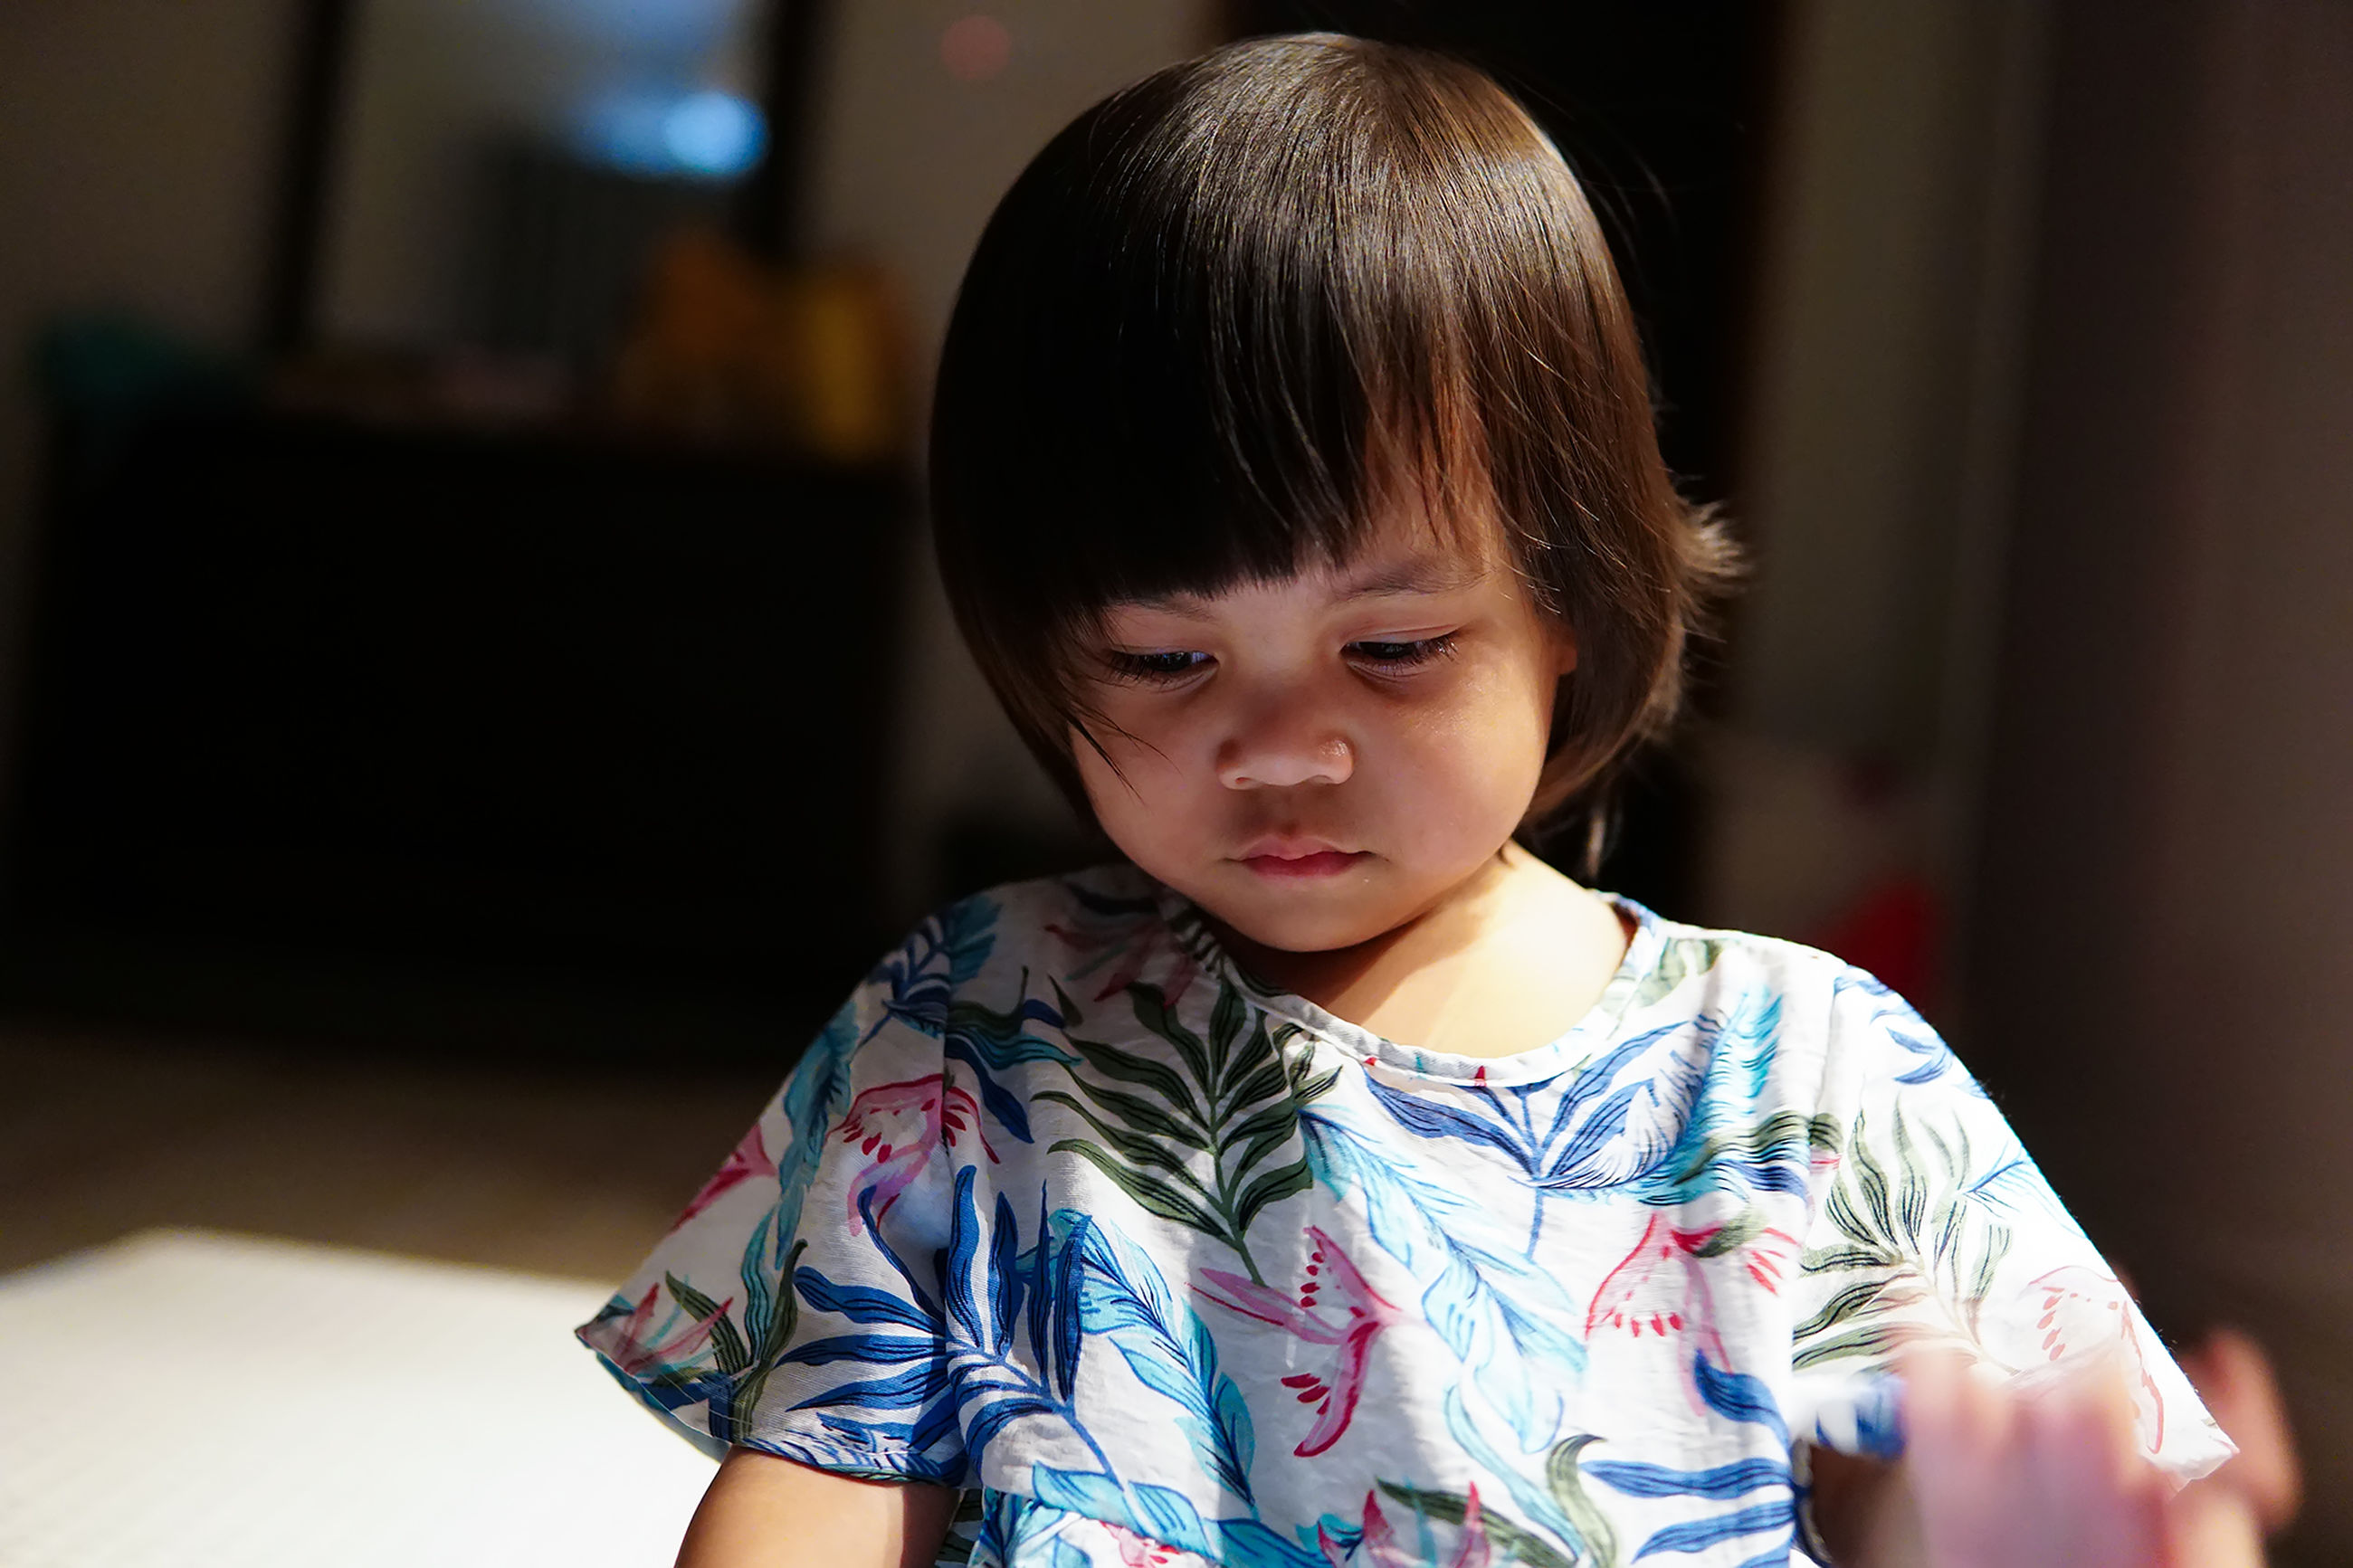 childhood, child, one person, real people, front view, indoors, innocence, casual clothing, focus on foreground, lifestyles, girls, home interior, females, cute, looking, waist up, women, bangs, floral pattern, hairstyle